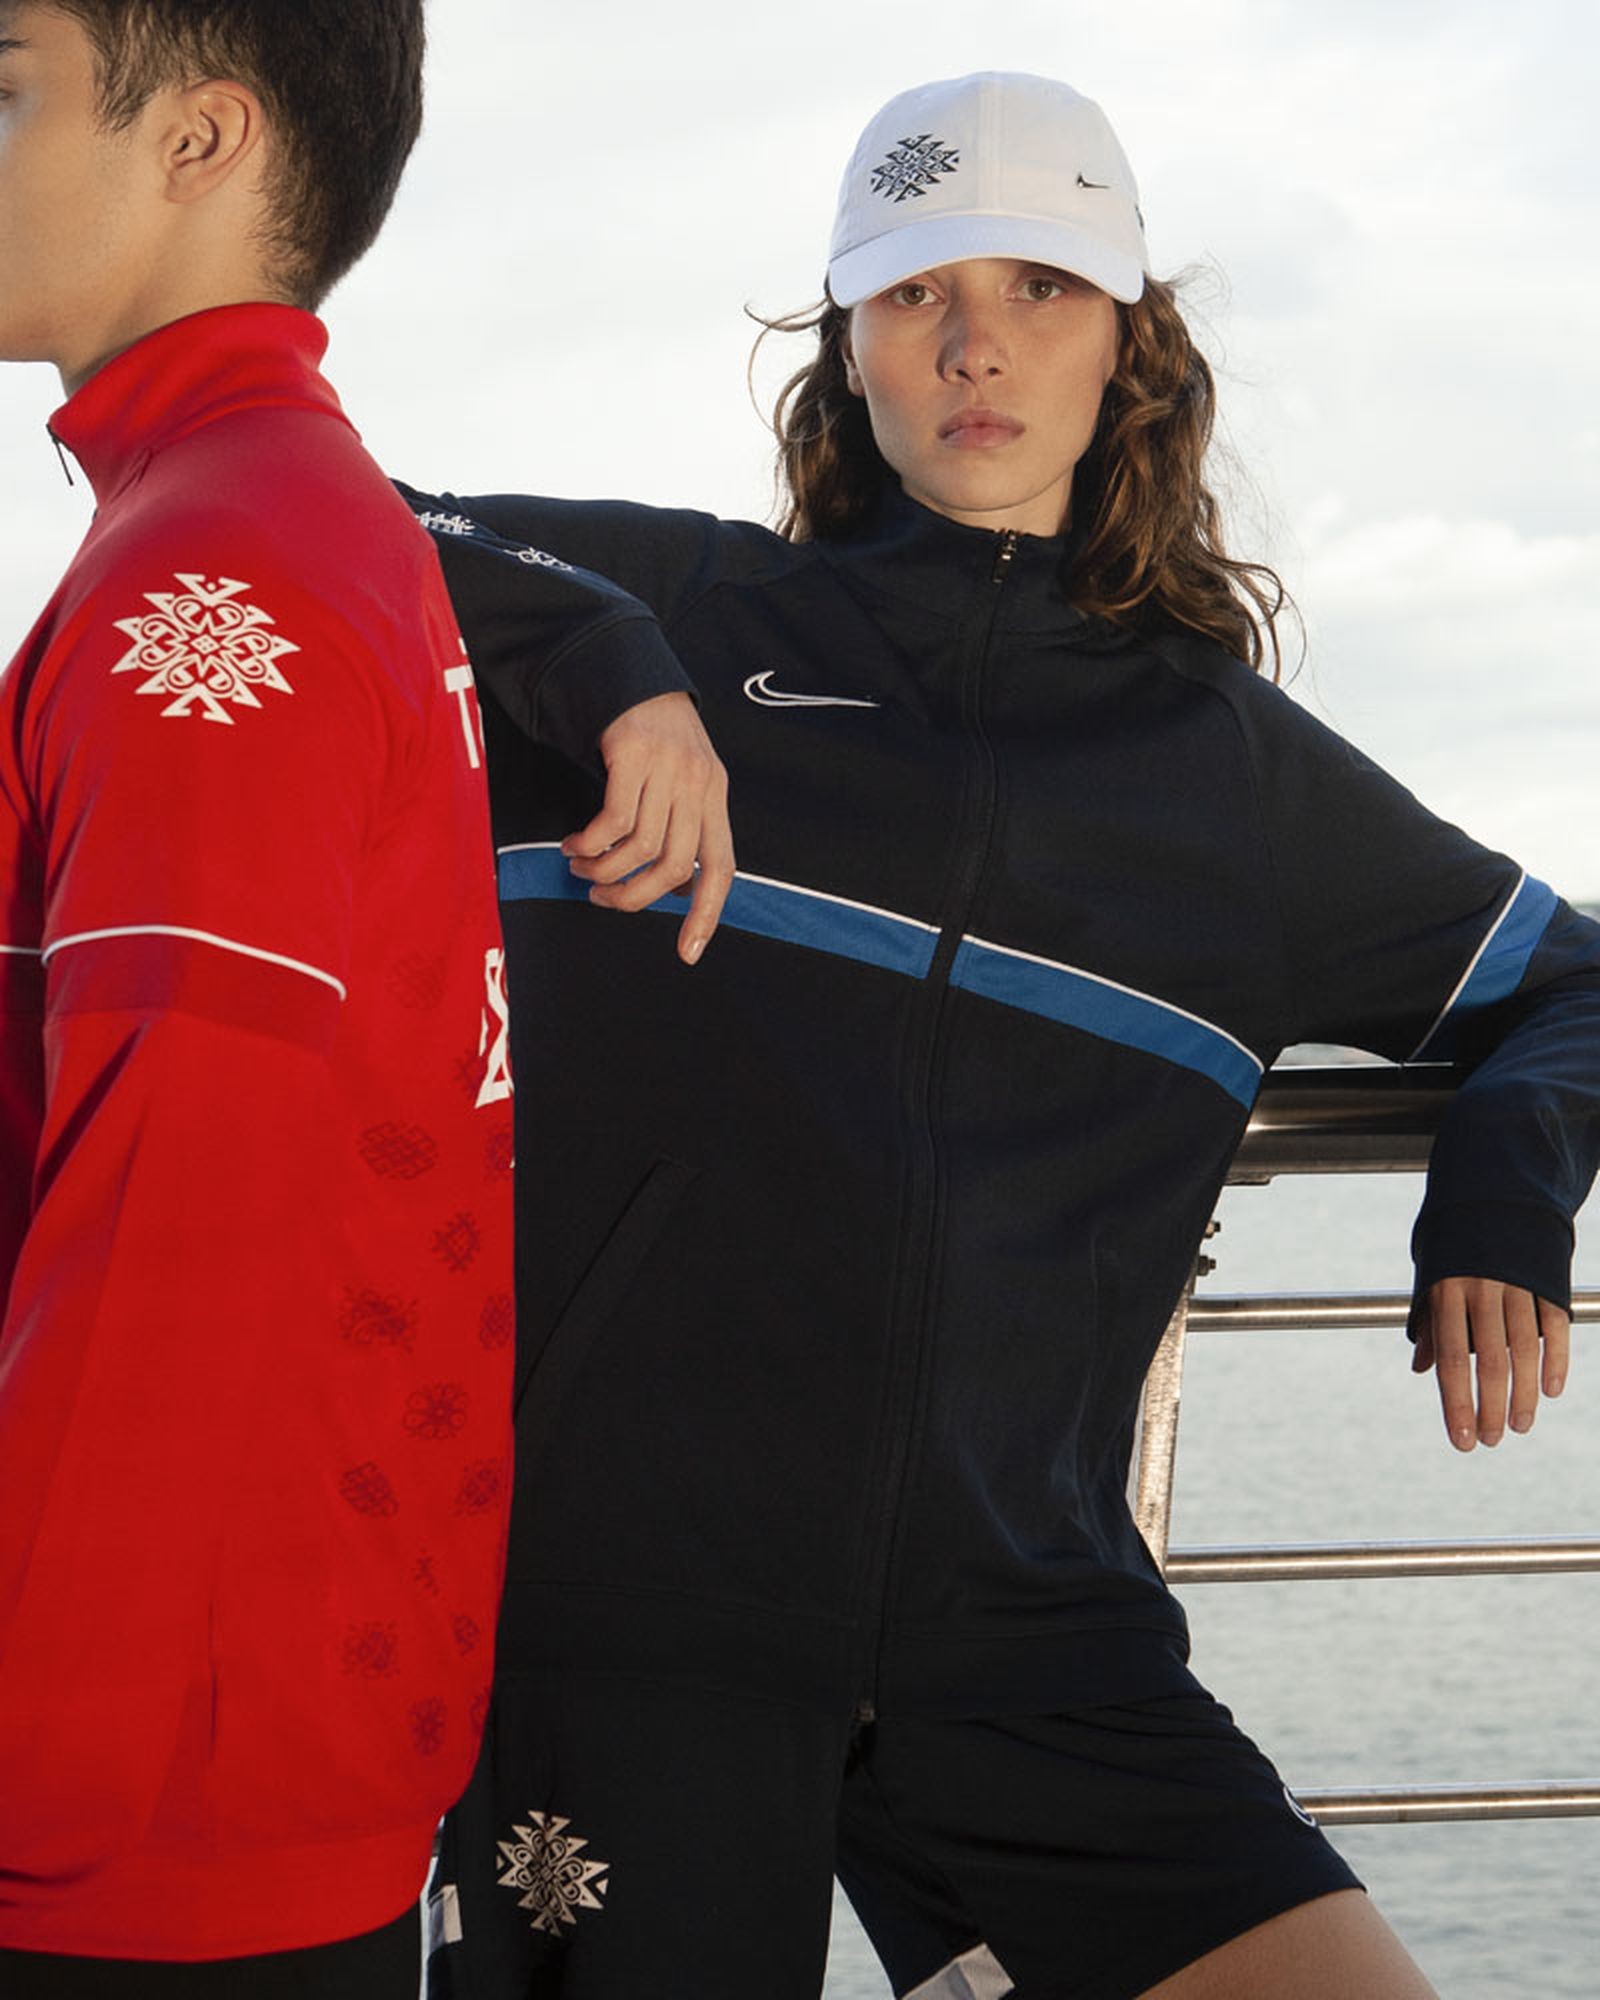 les-benjamins-made-this-years-coolest-olympics-uniforms-then-designed-a-plane-07